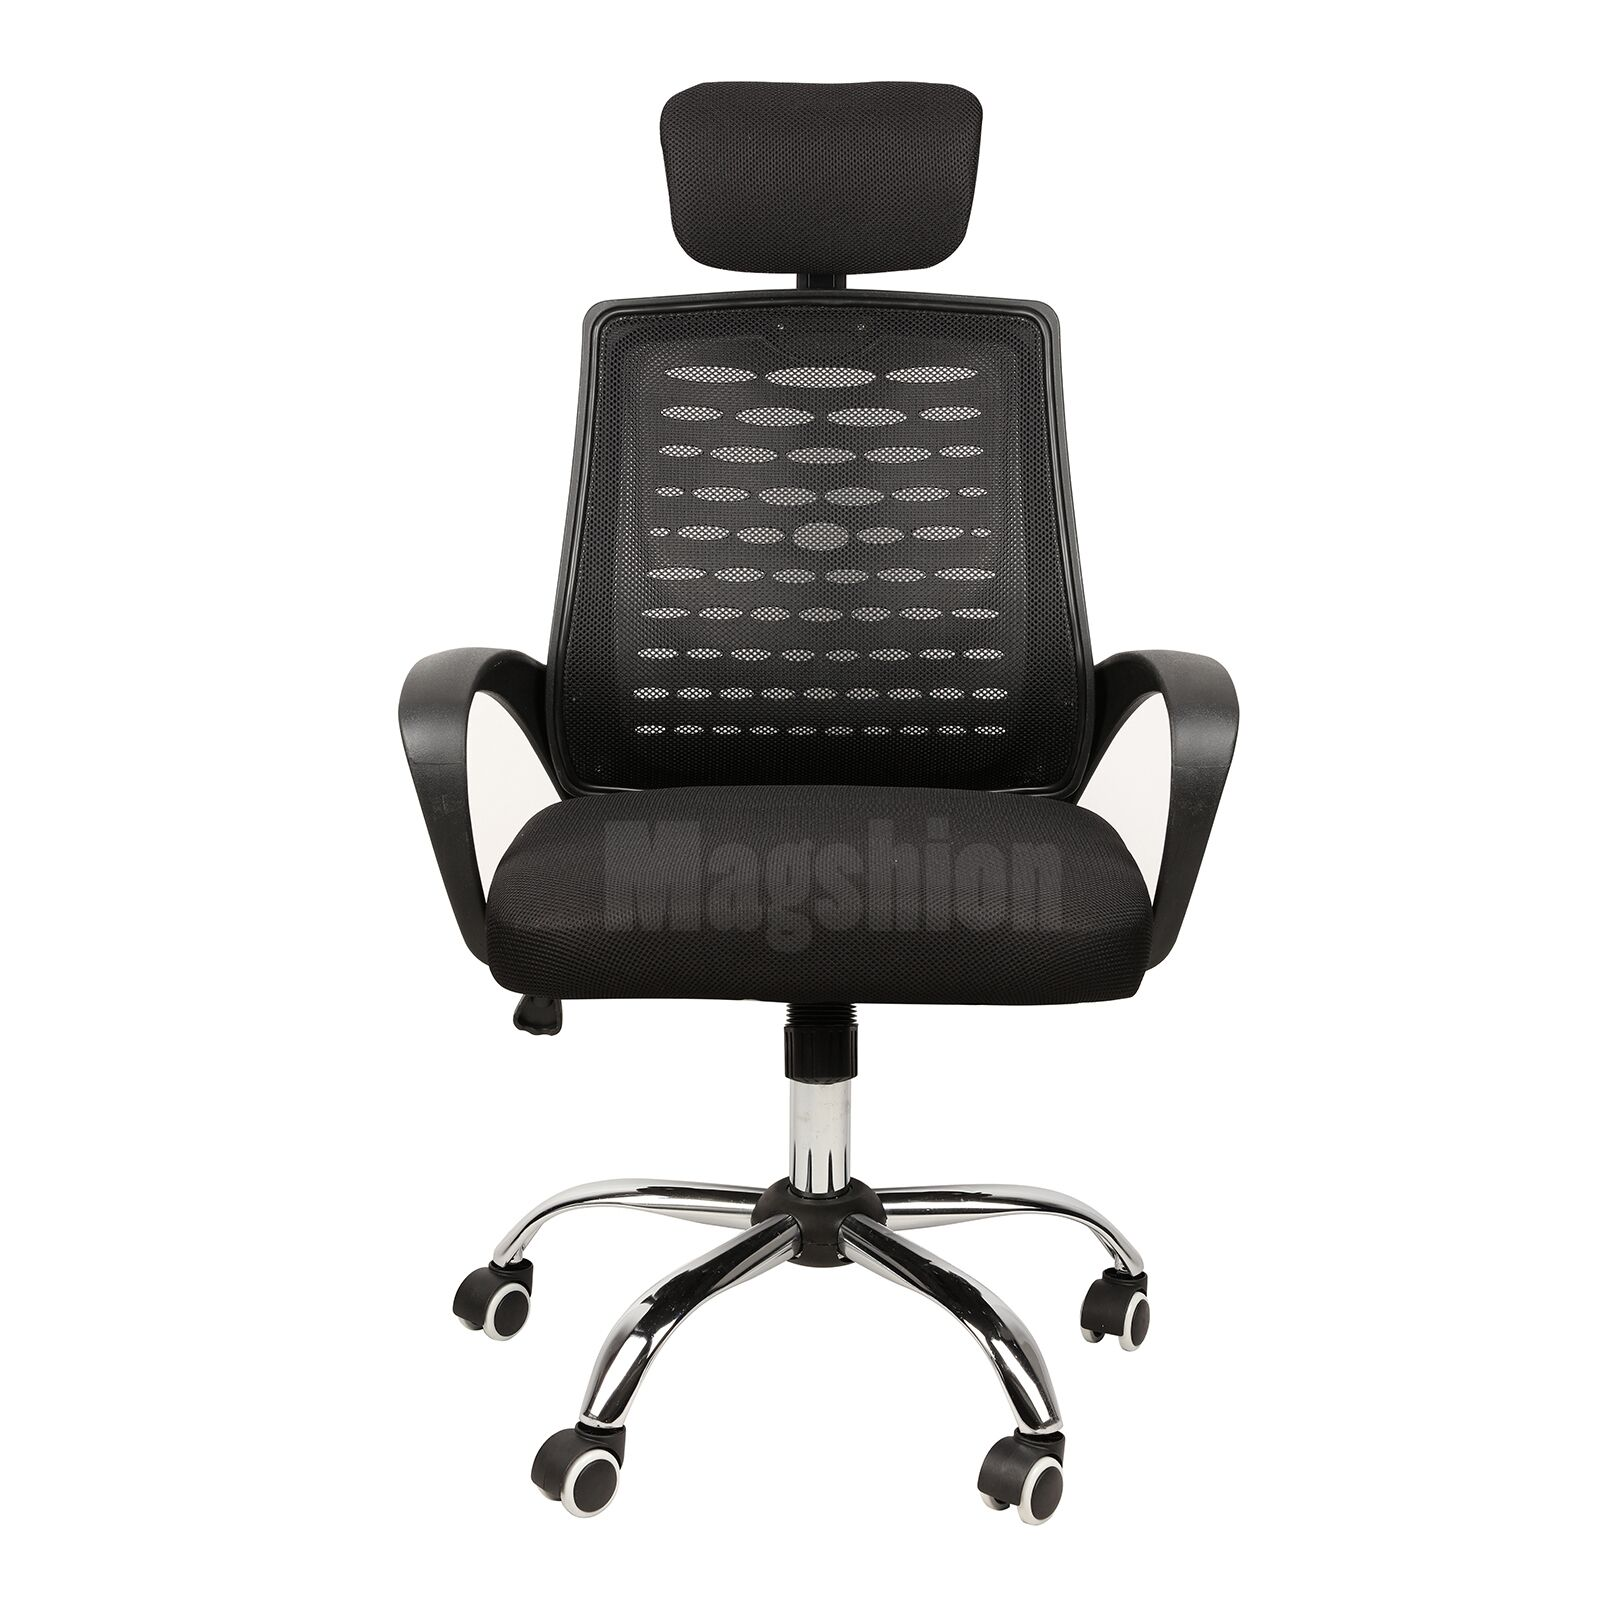 office chair armrest victorian chairs for sale modern home drafting computer desk commercial task